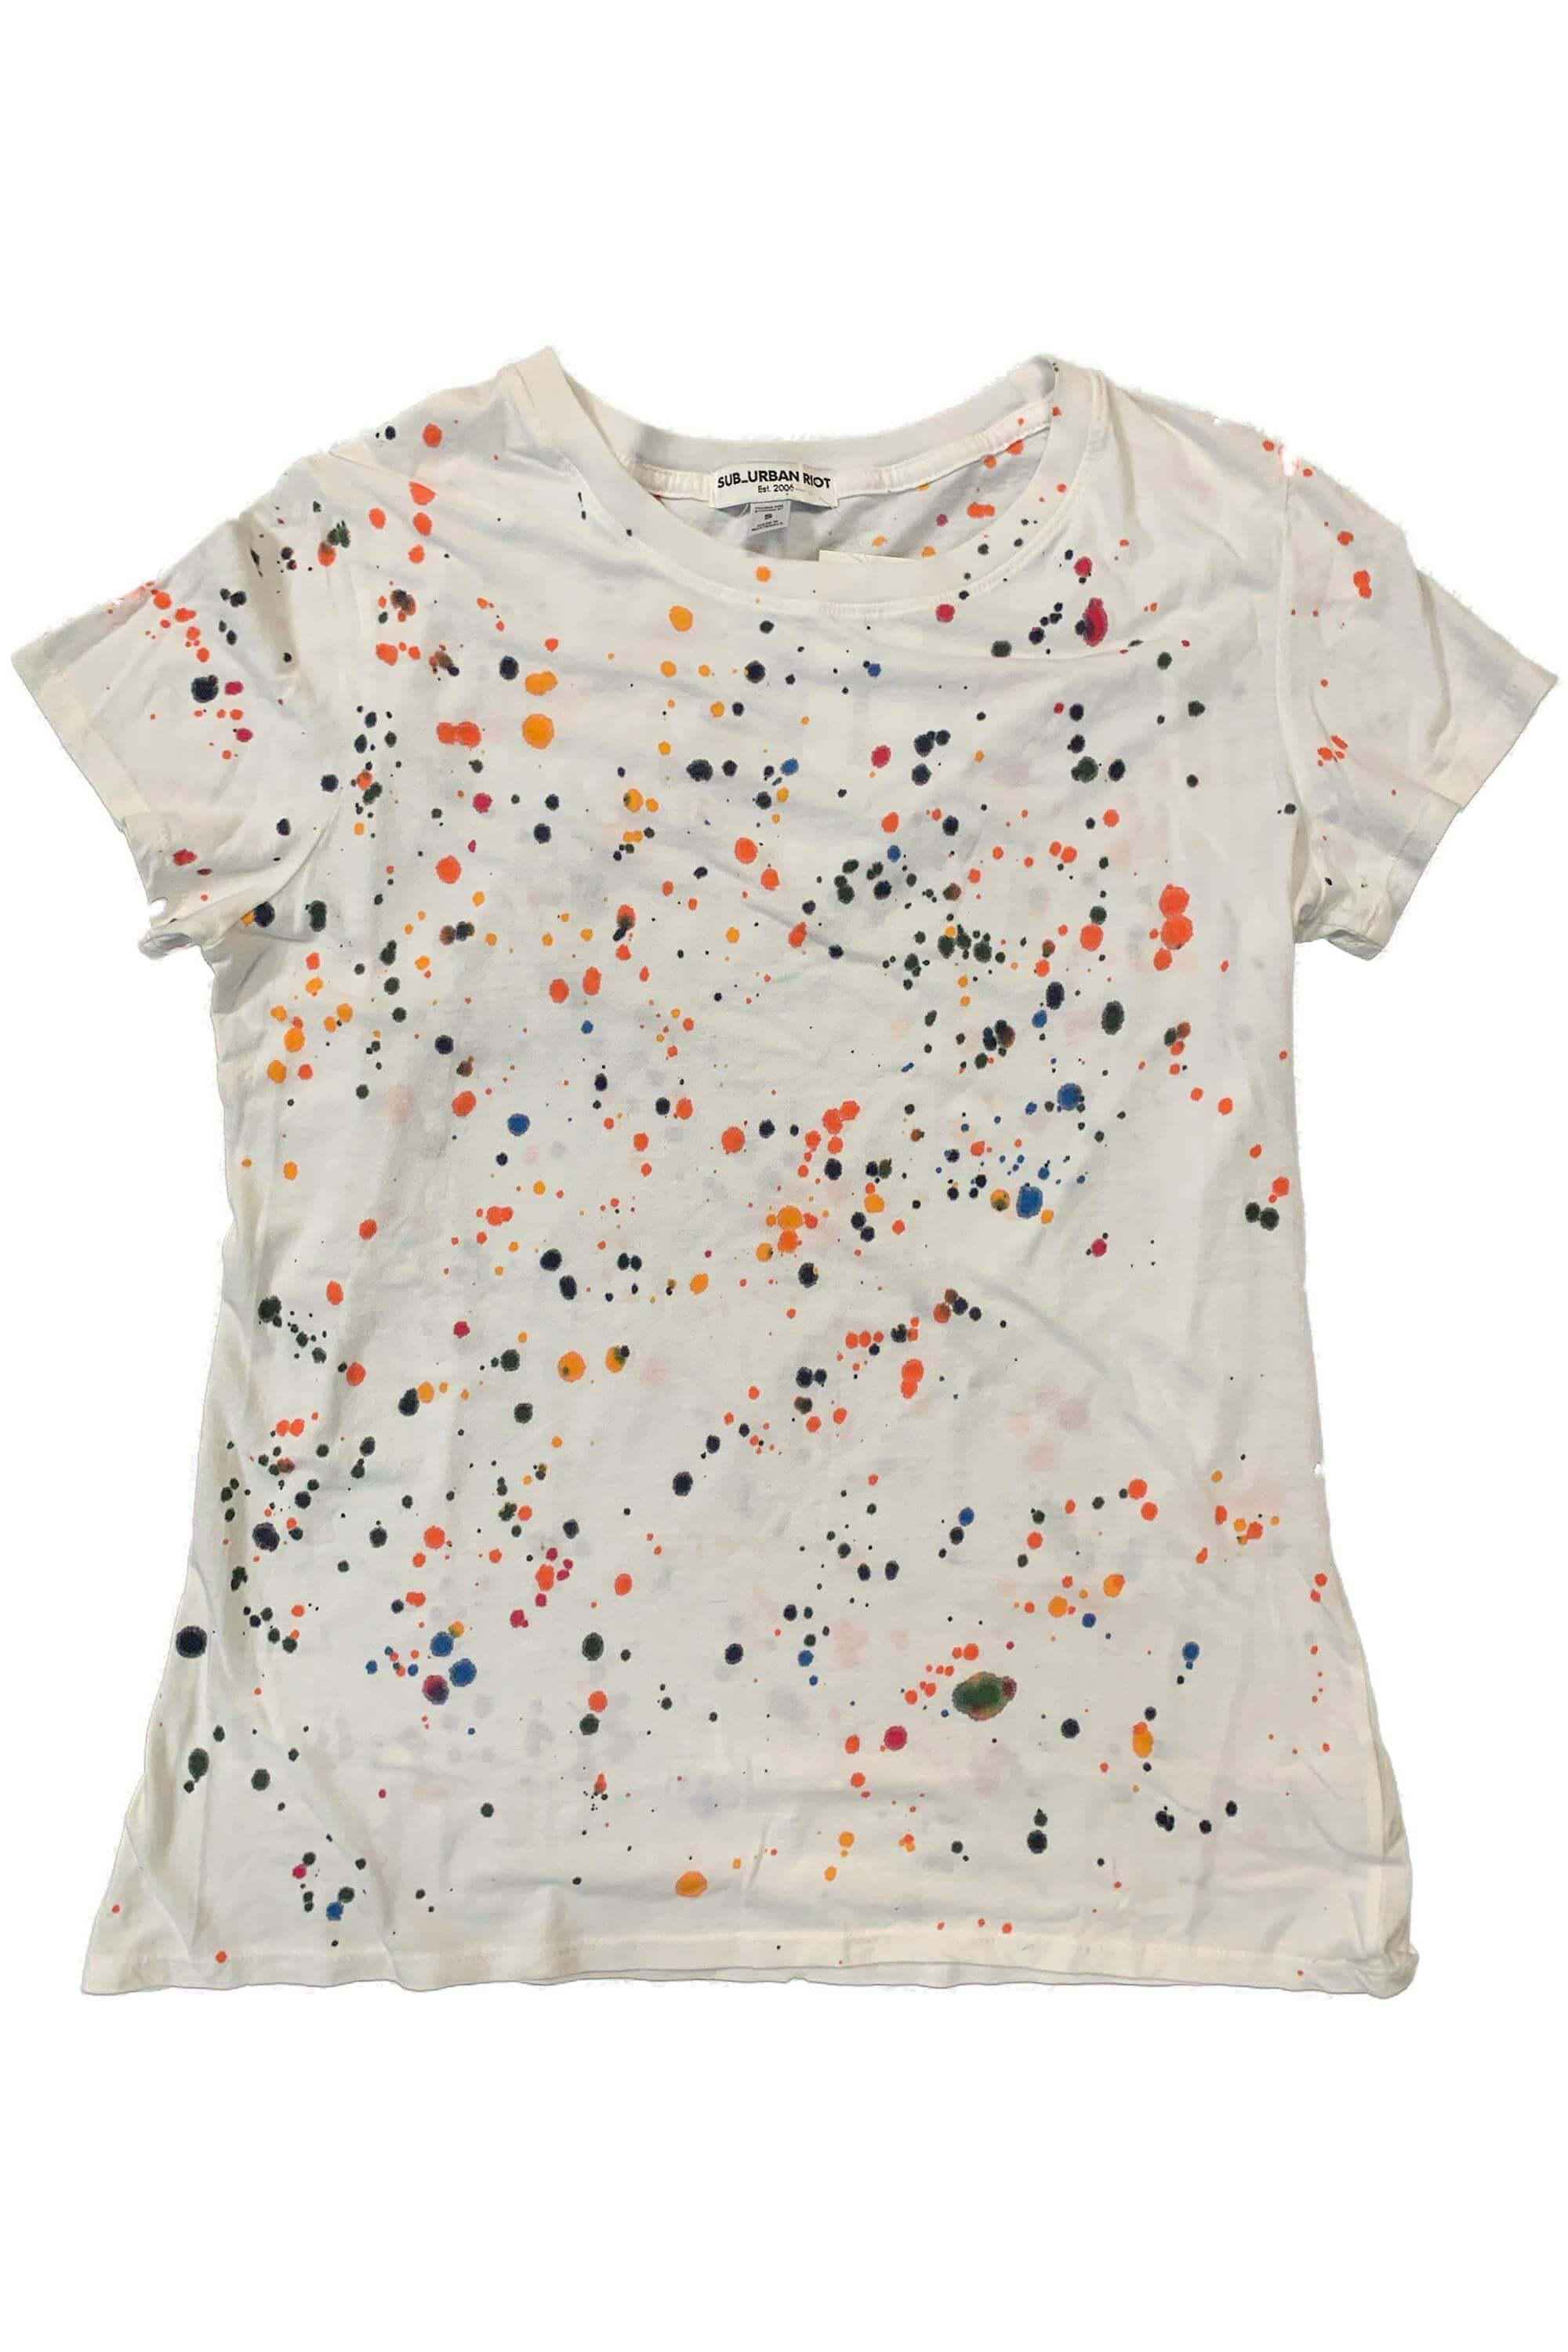 SPLATTER PAINT YOUTH SIZE LOOSE TEE 1